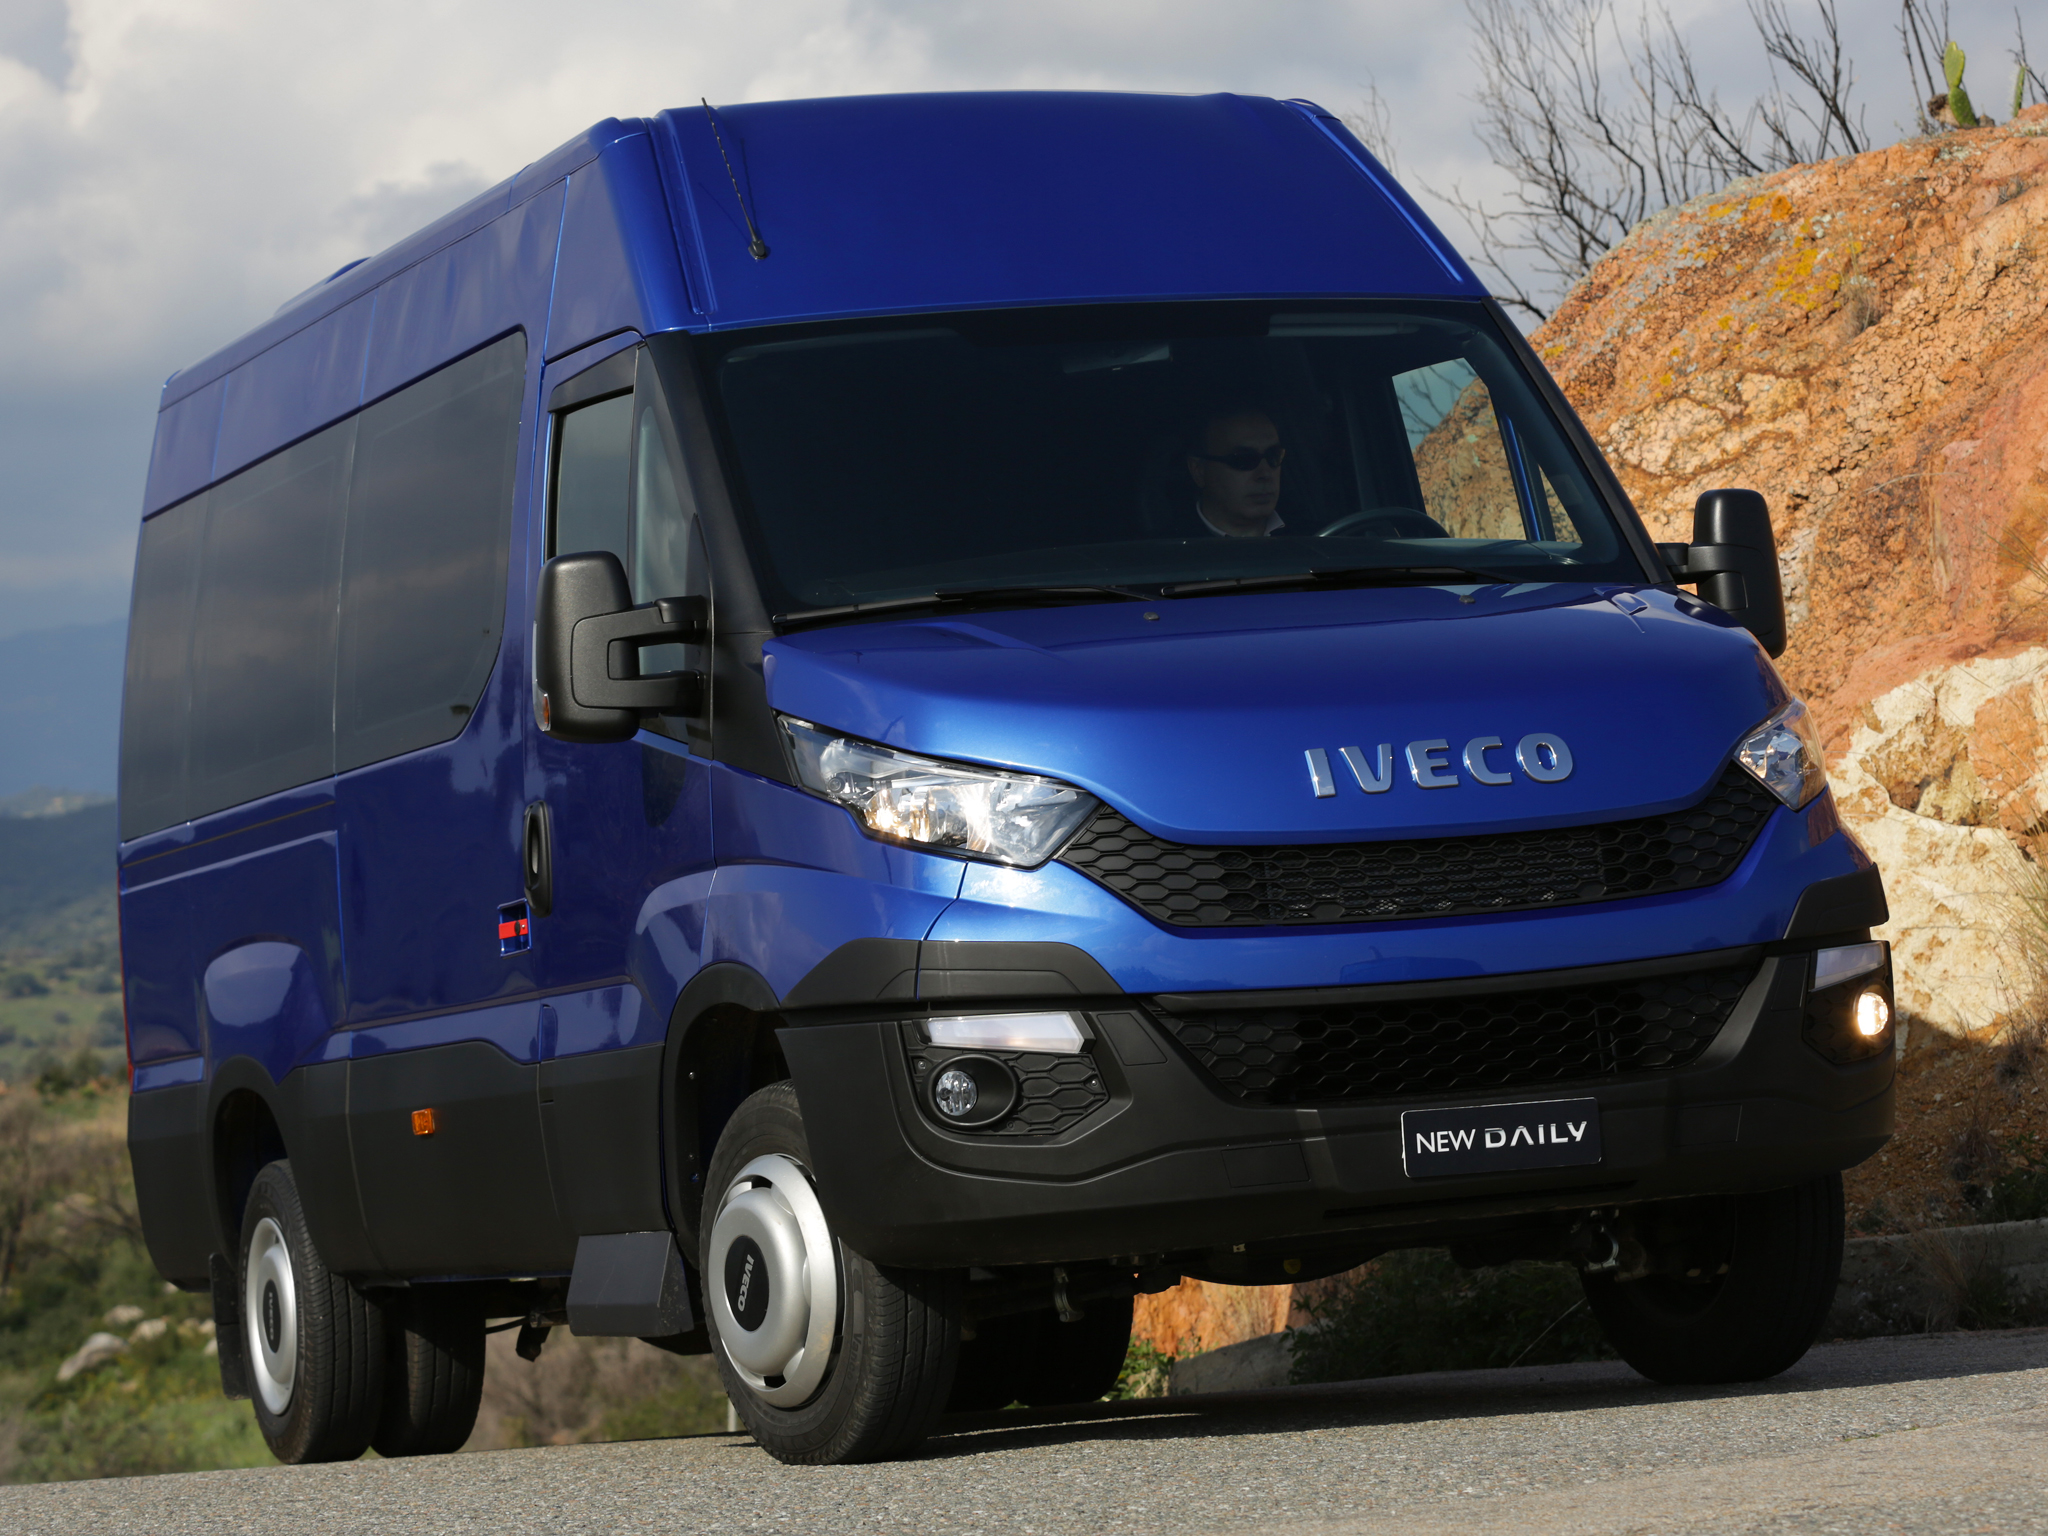 2014 - [Iveco] Daily - Page 3 Iveco-reveals-the-new-daily-for-2014-say-it-s-80-redesigned-photo-gallery_14